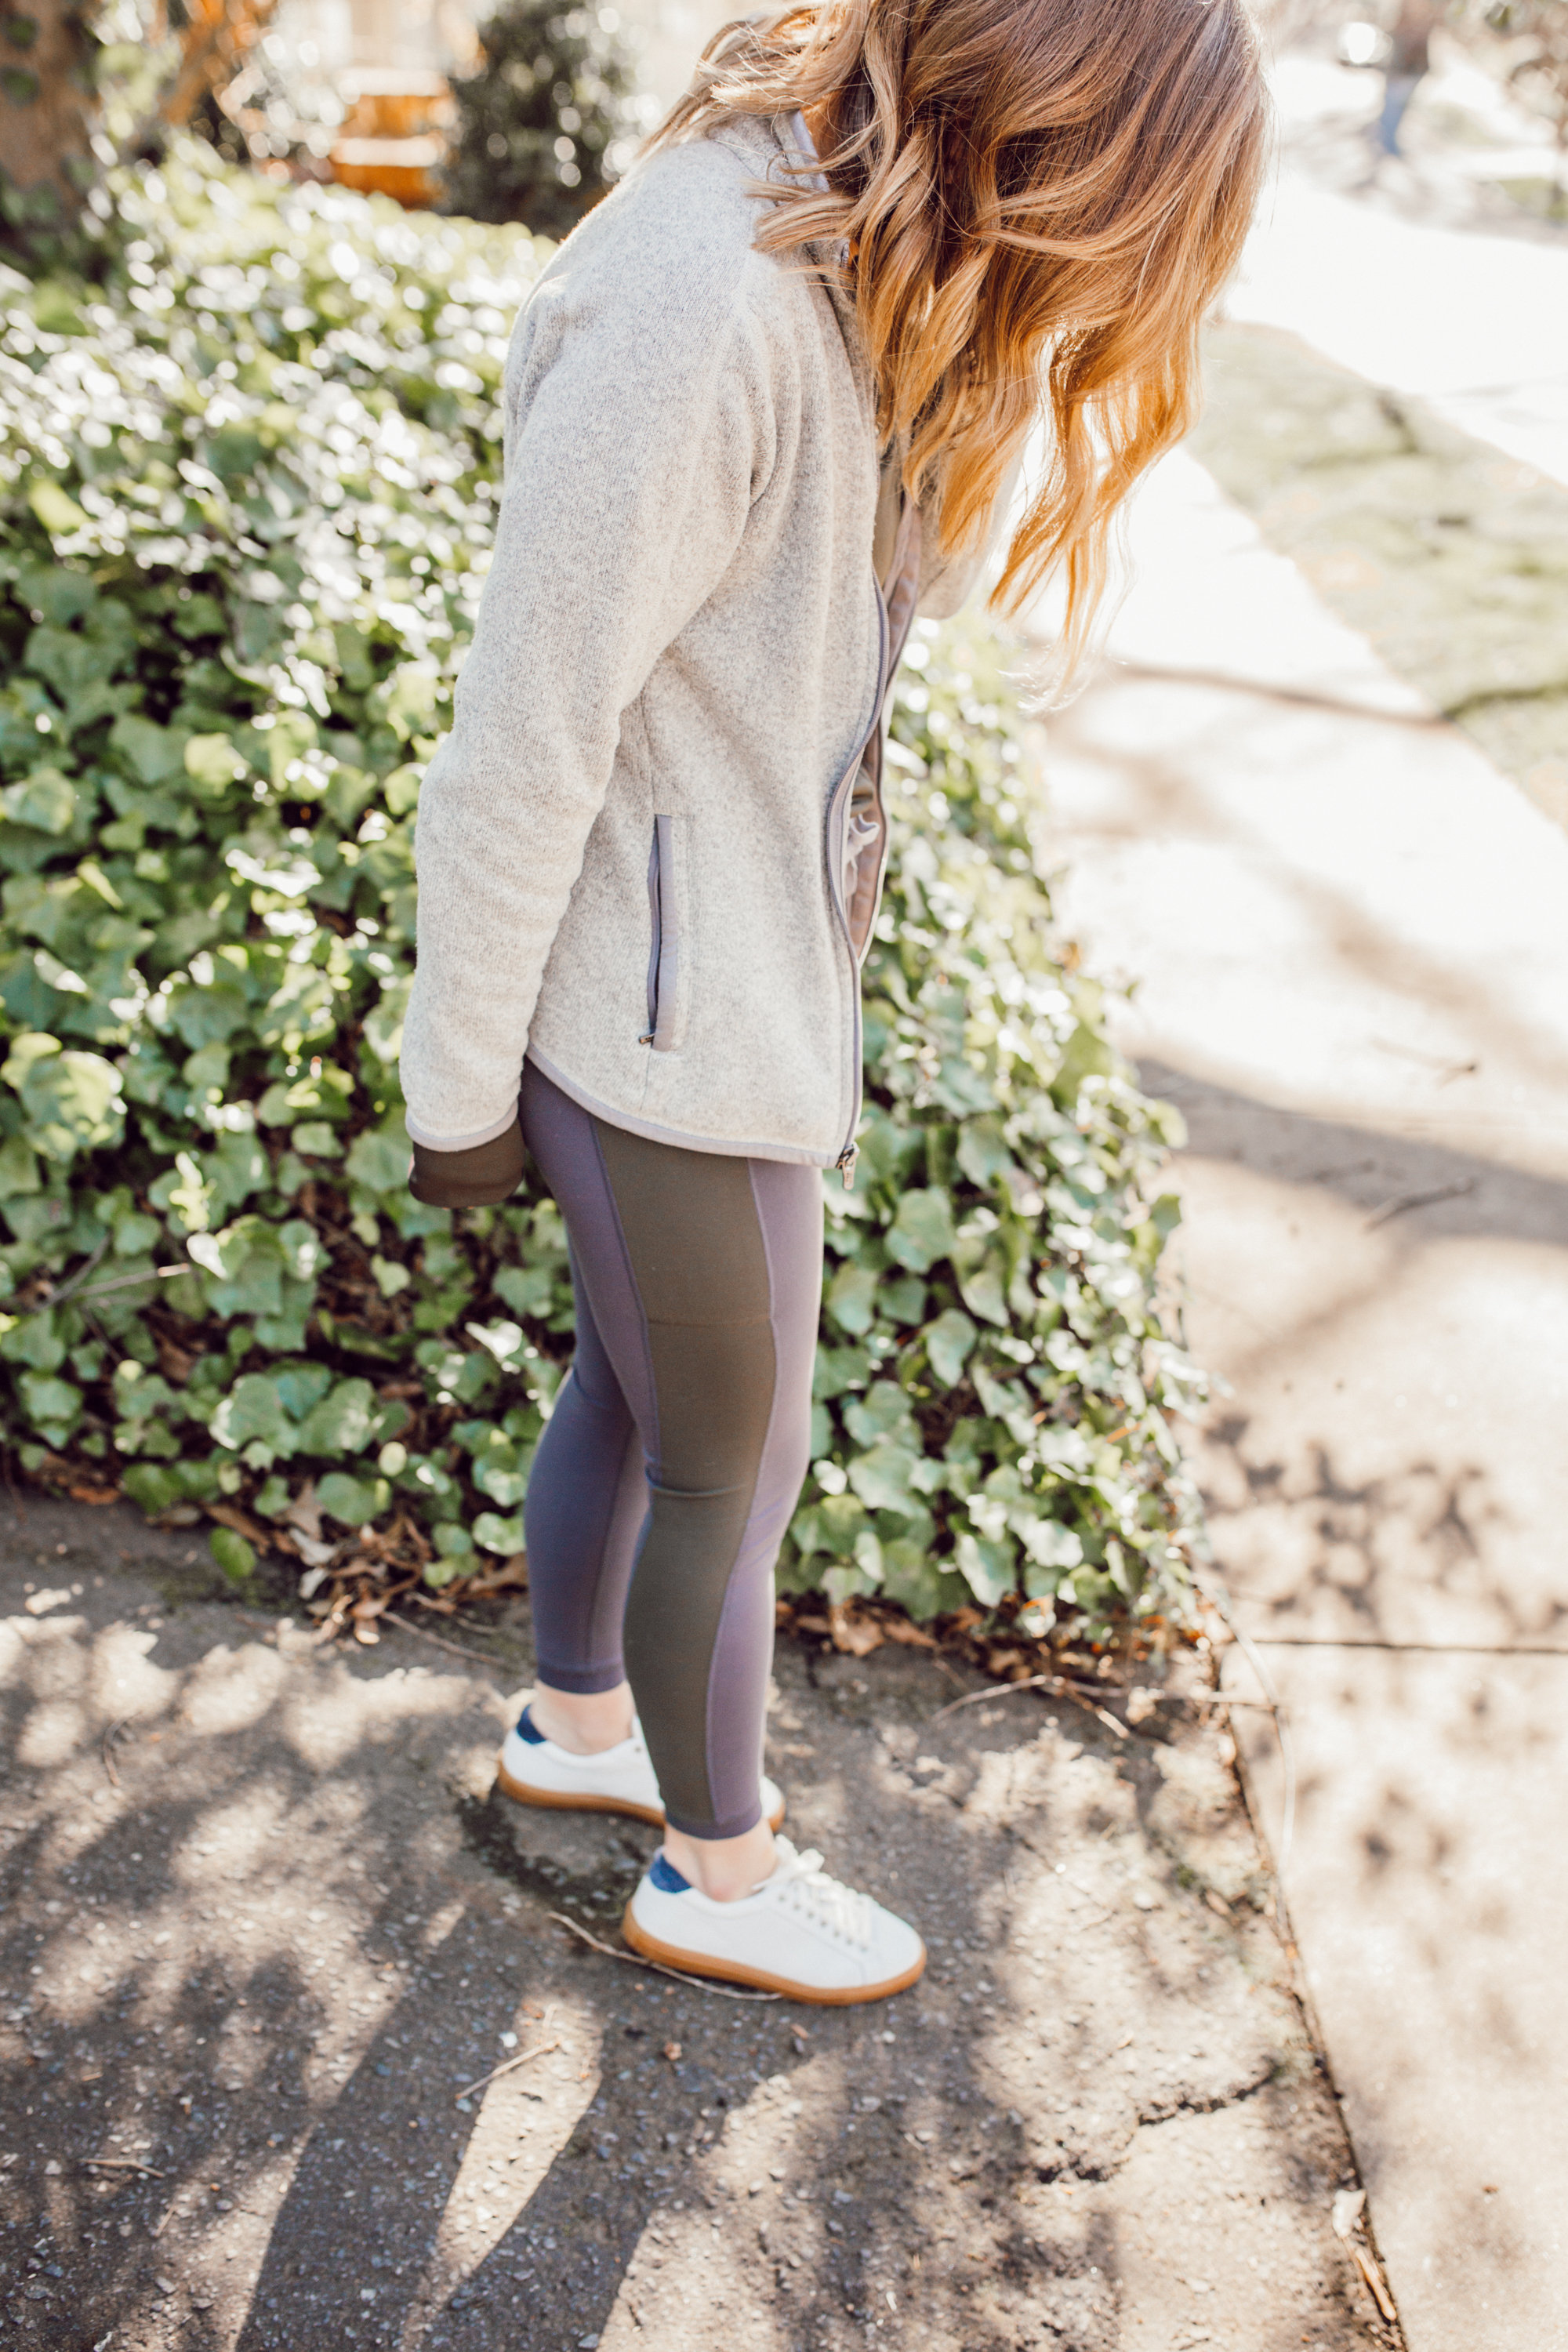 FWTFL vs BBG: How they compare and overall thoughts on the two programs | Cute Winter Workout Wear | Louella Reese